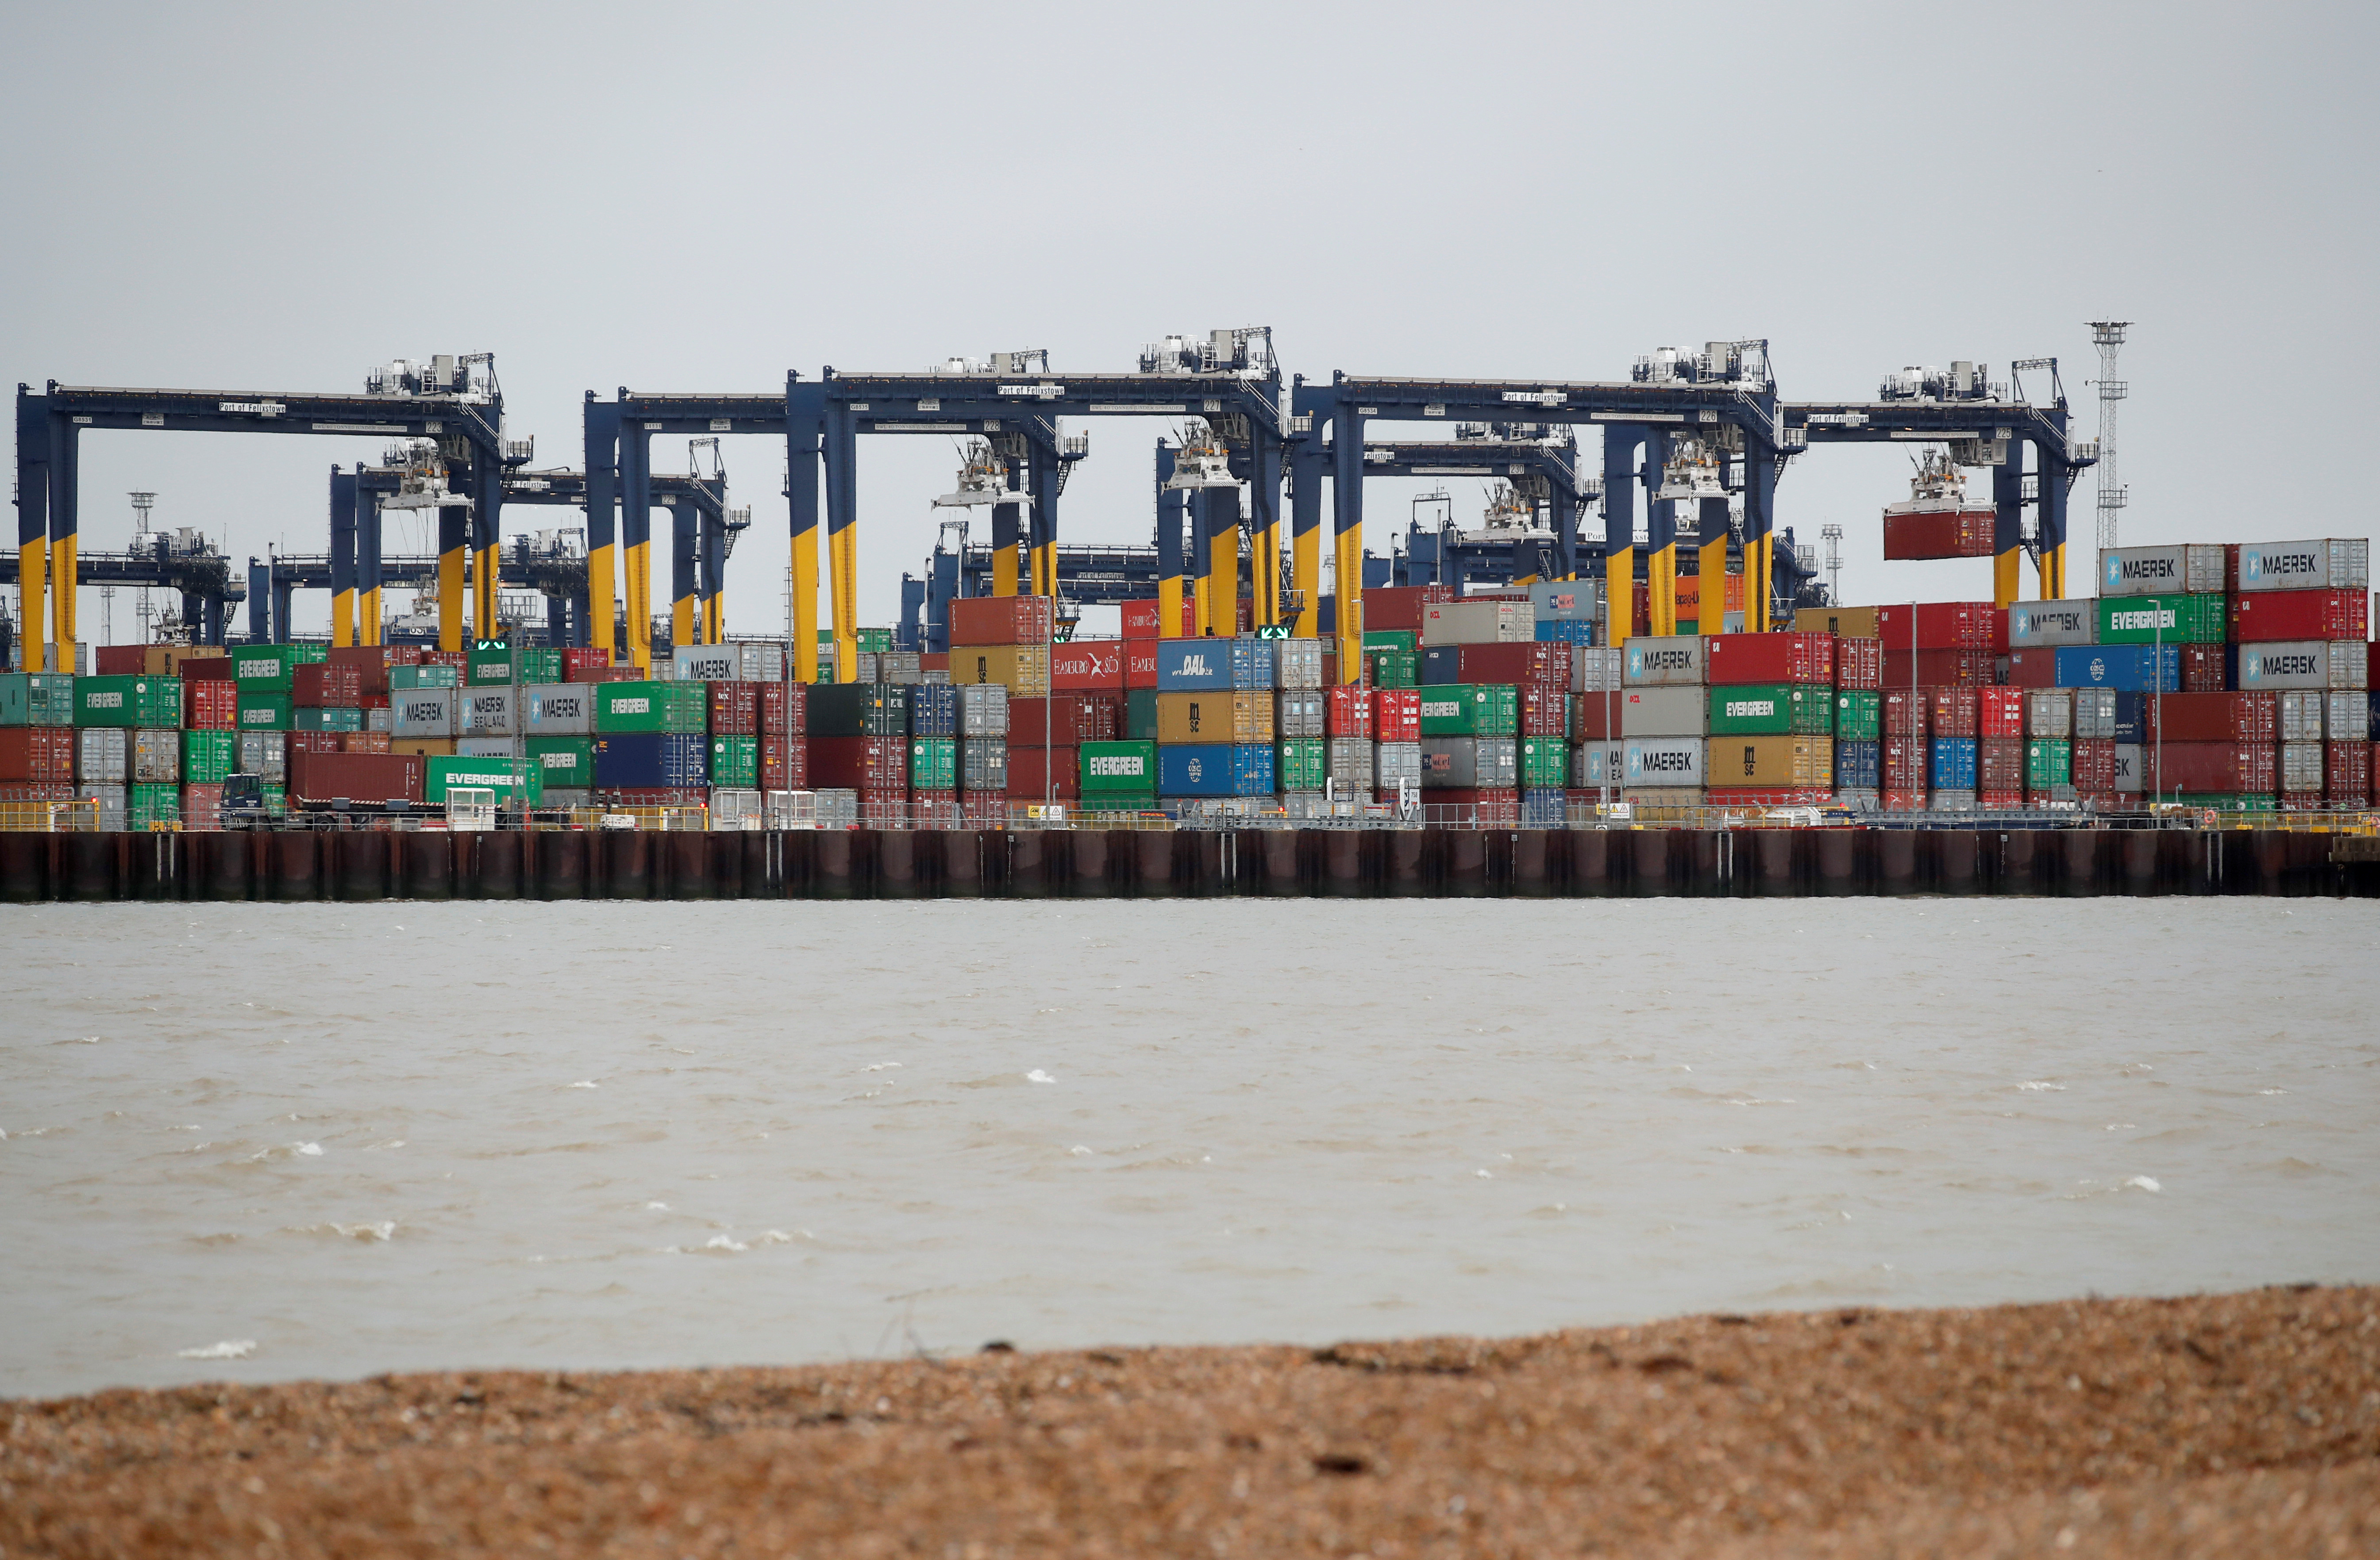 Containers are stacked at the Port of Felixstowe, Britain, January 28, 2021. Picture taken January 28, 2021.  REUTERS/Peter Cziborra